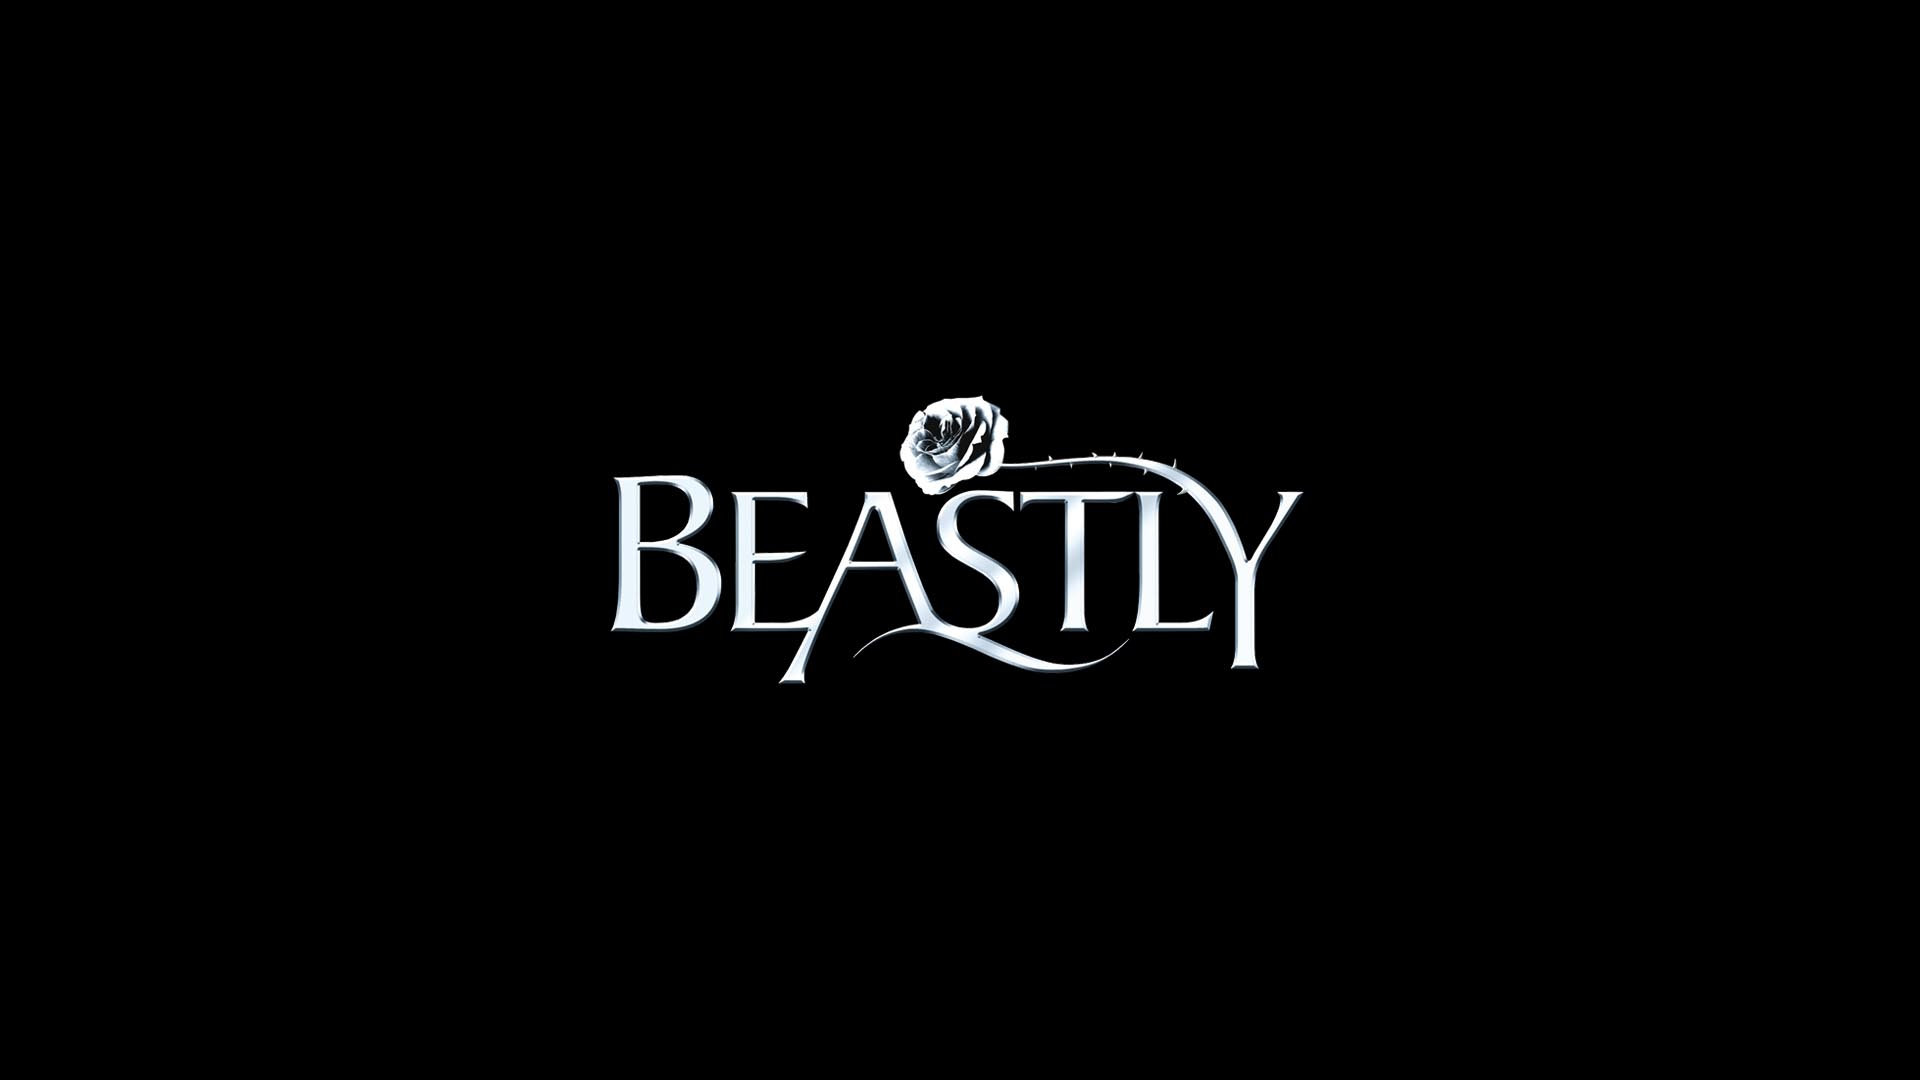 Beastly HD Wallpaper Background Image 1920x1080 ID523159 1920x1080